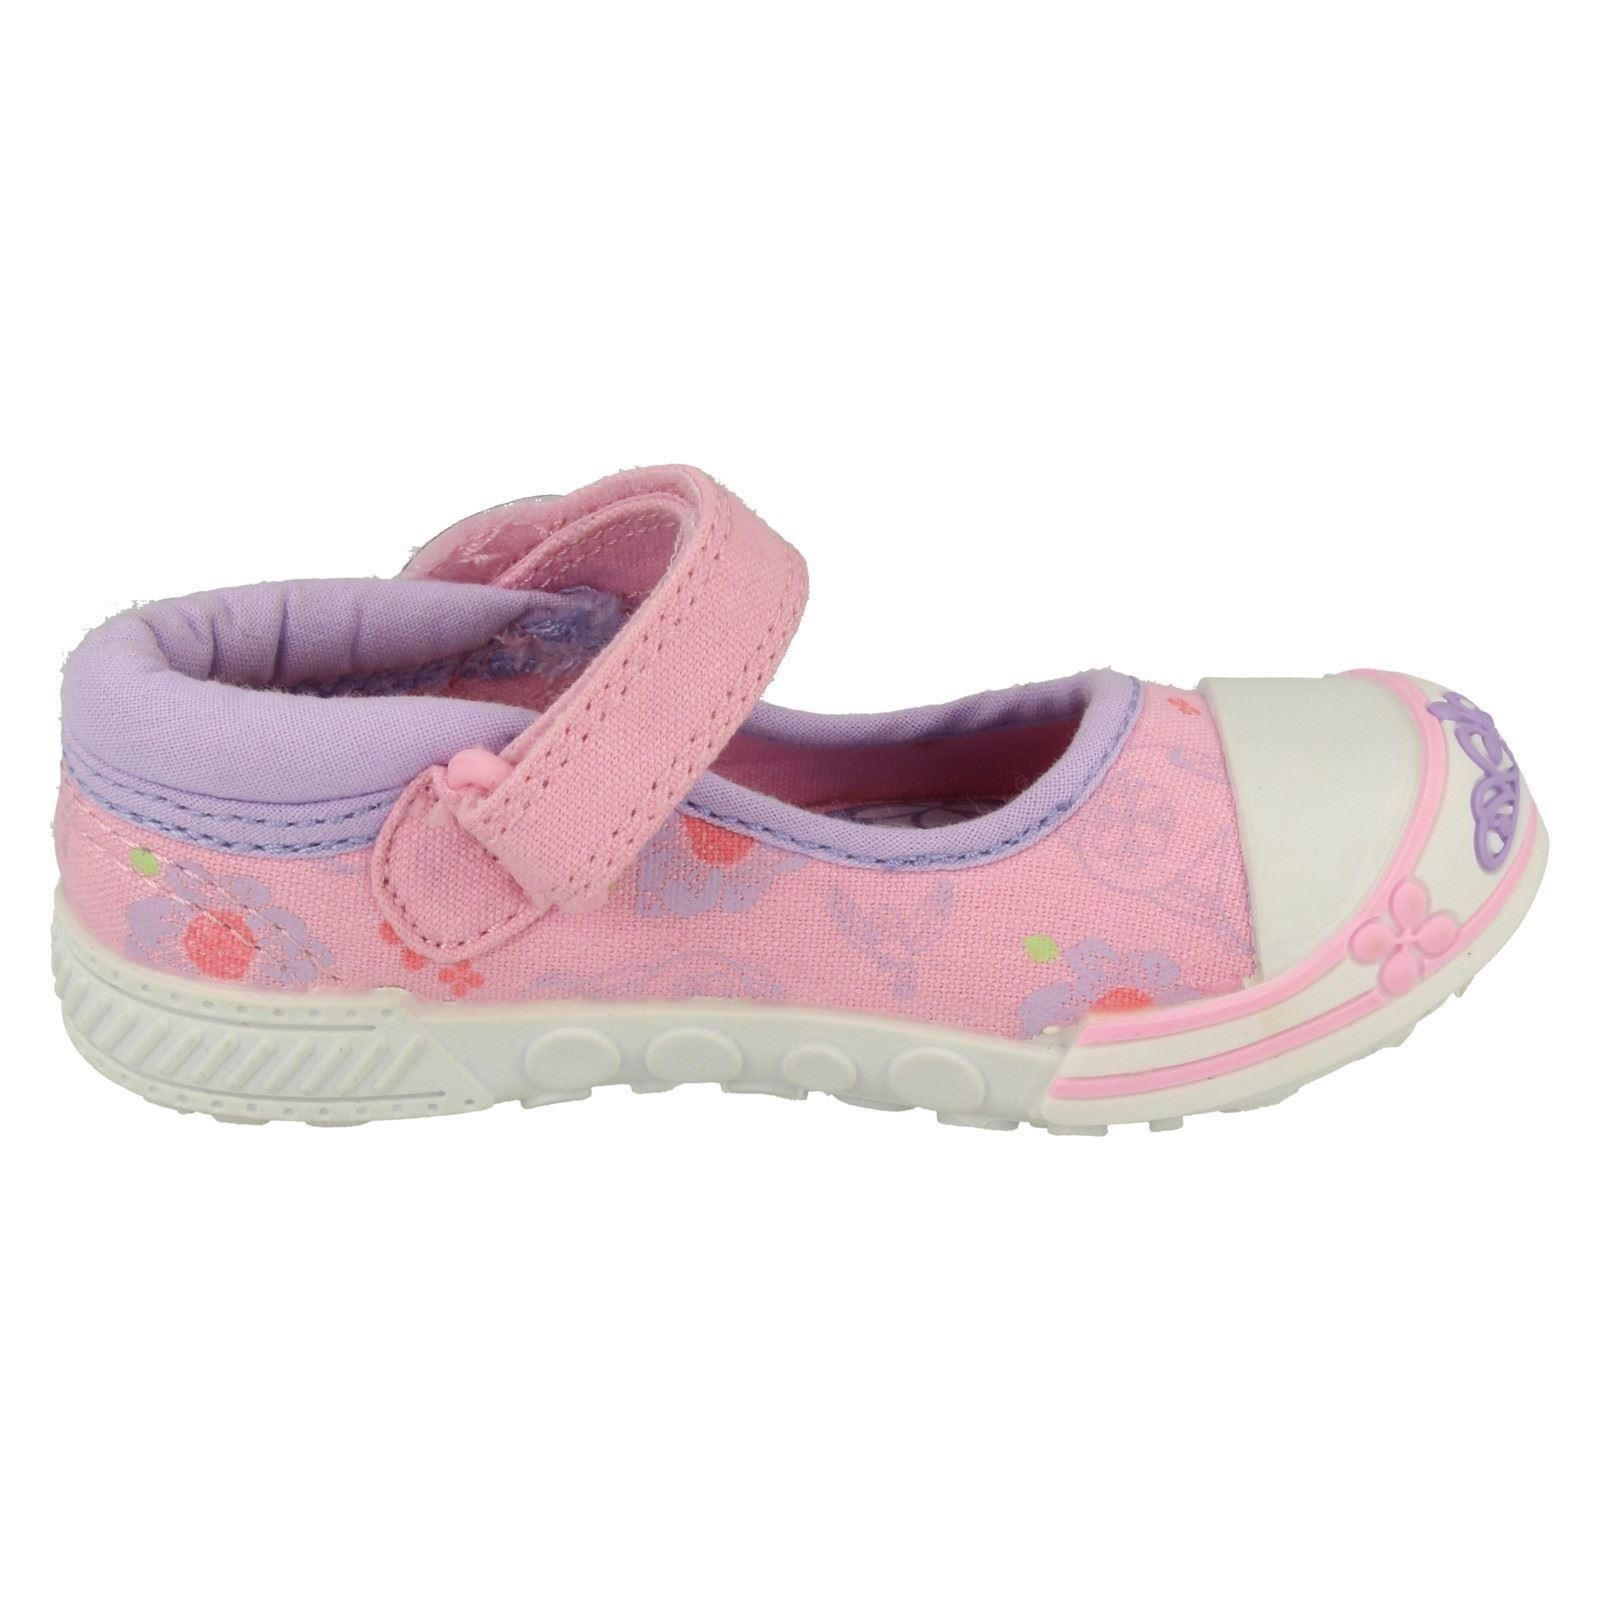 Chicas Disney Sofia the First Mary Jane Hook & Loop Zapatos De Lona-Sofía sueños